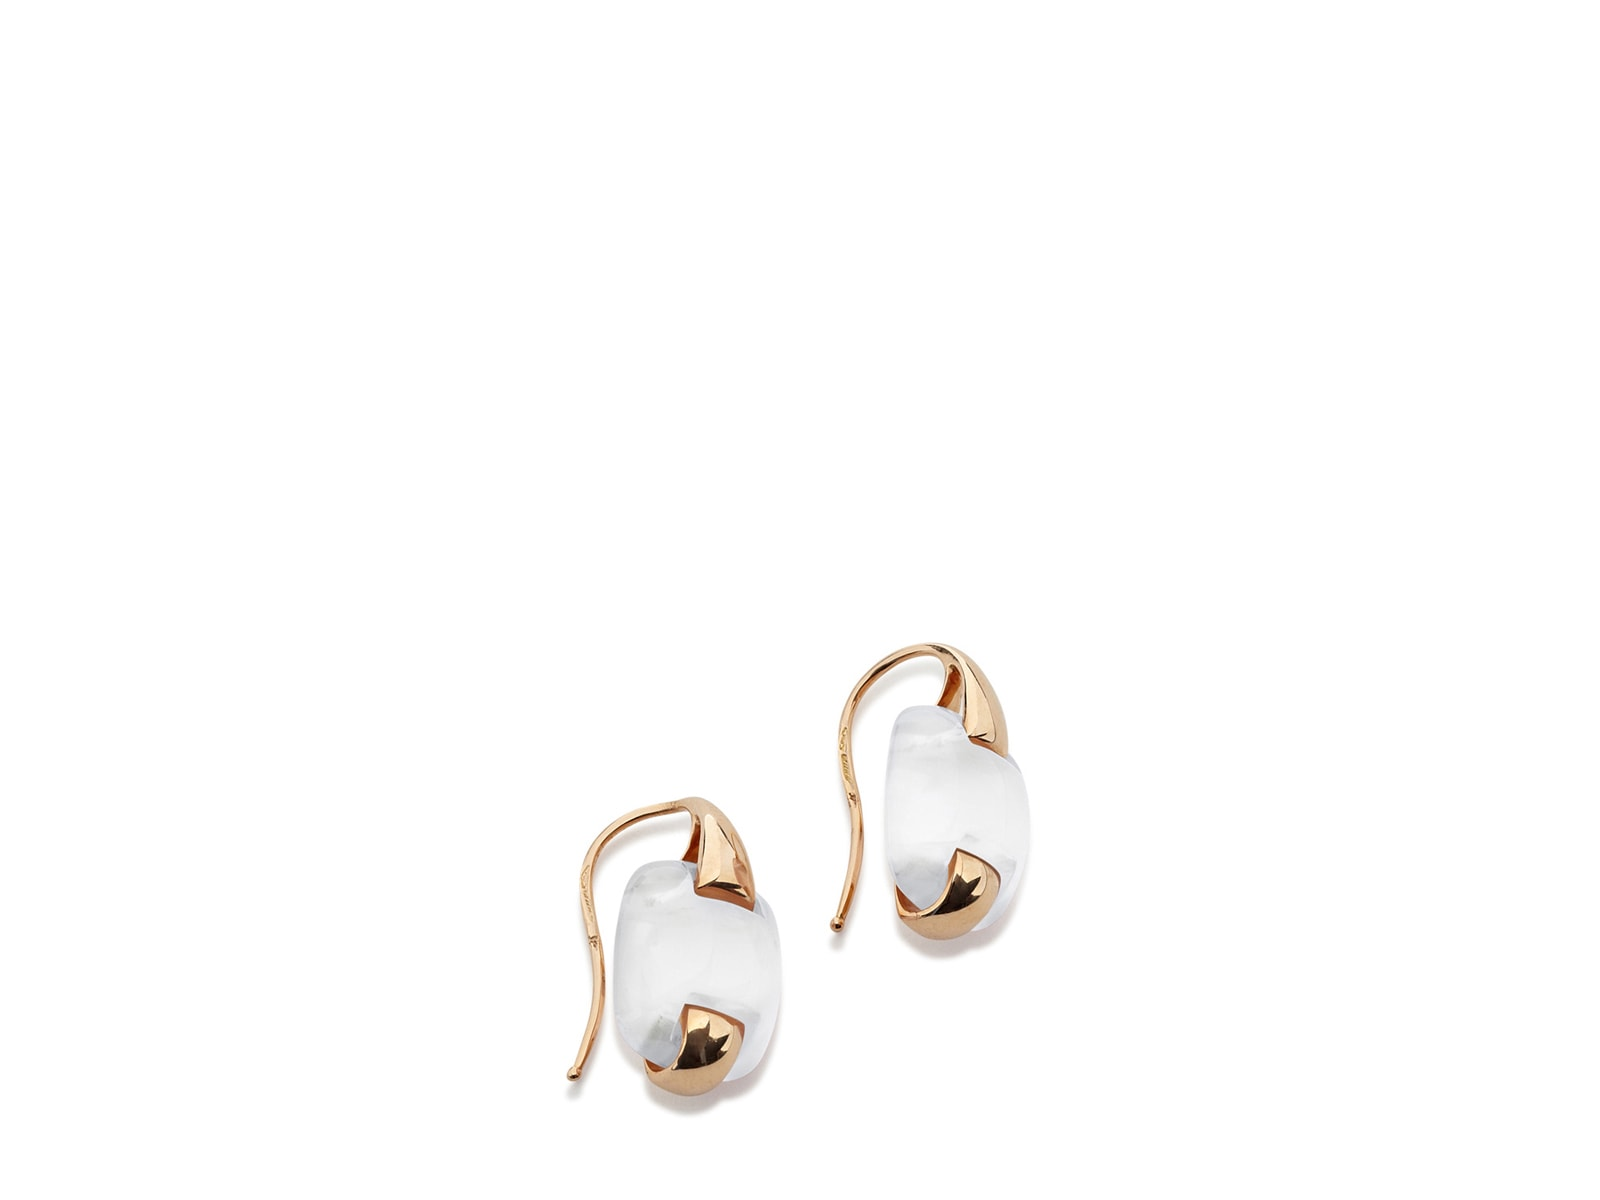 Vara earrings - Jewelry - Women - Salvatore Ferragamo